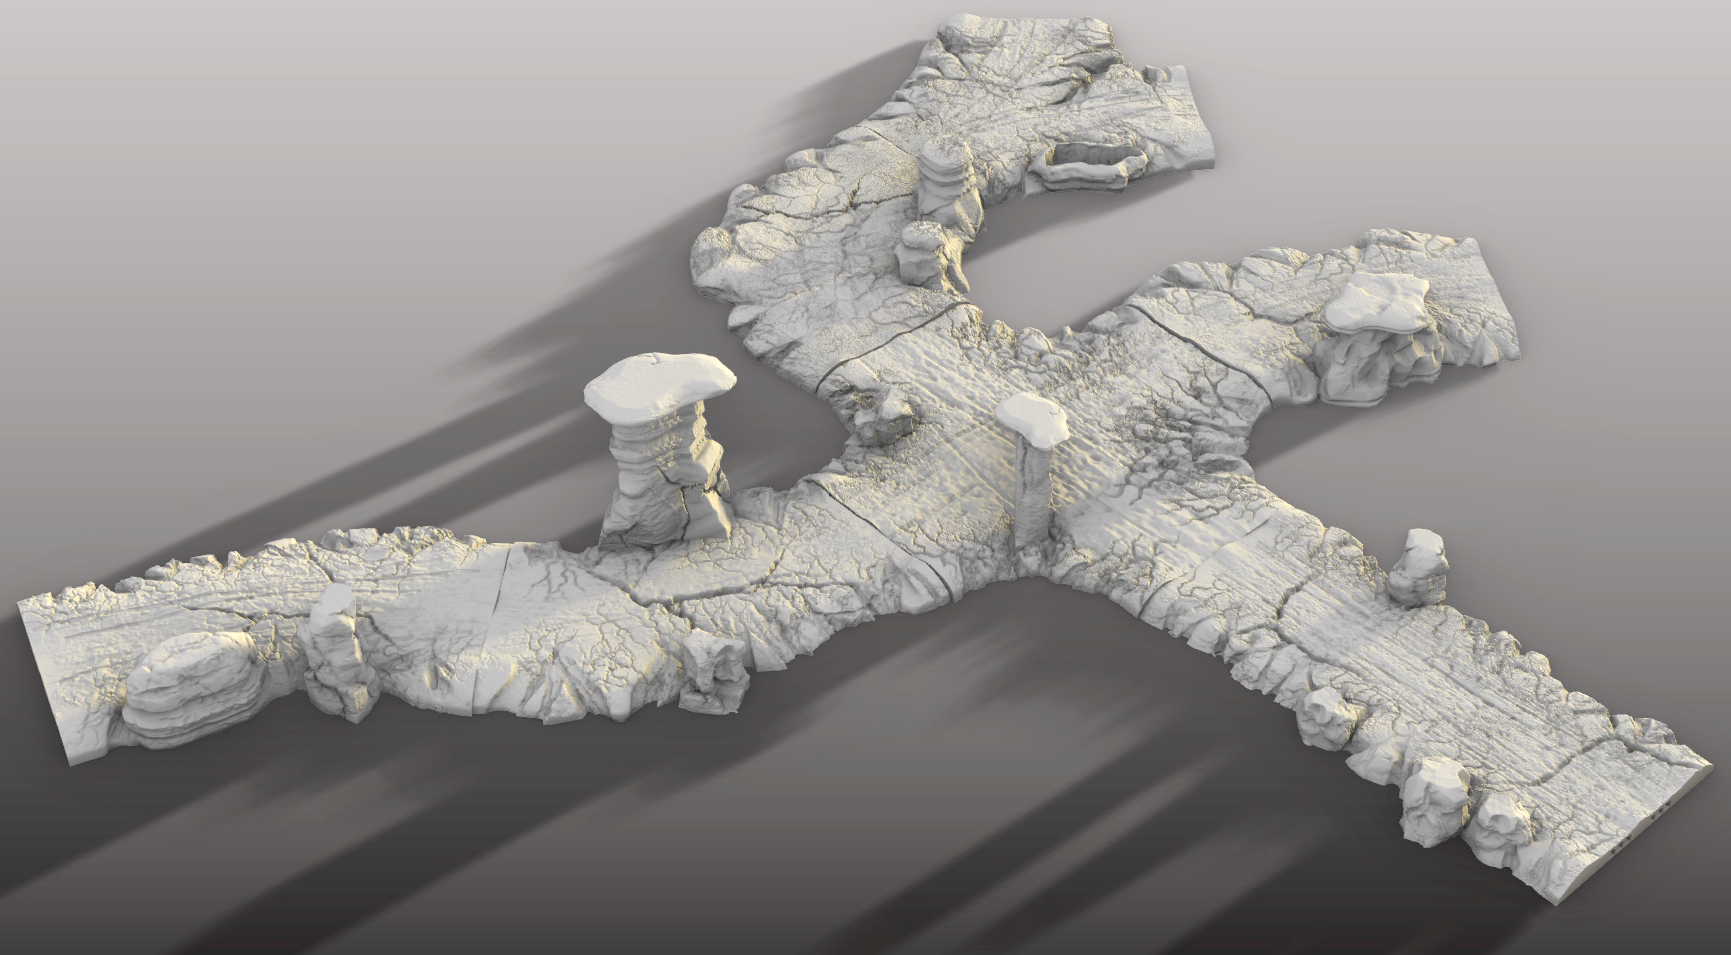 3d printable dirt roads